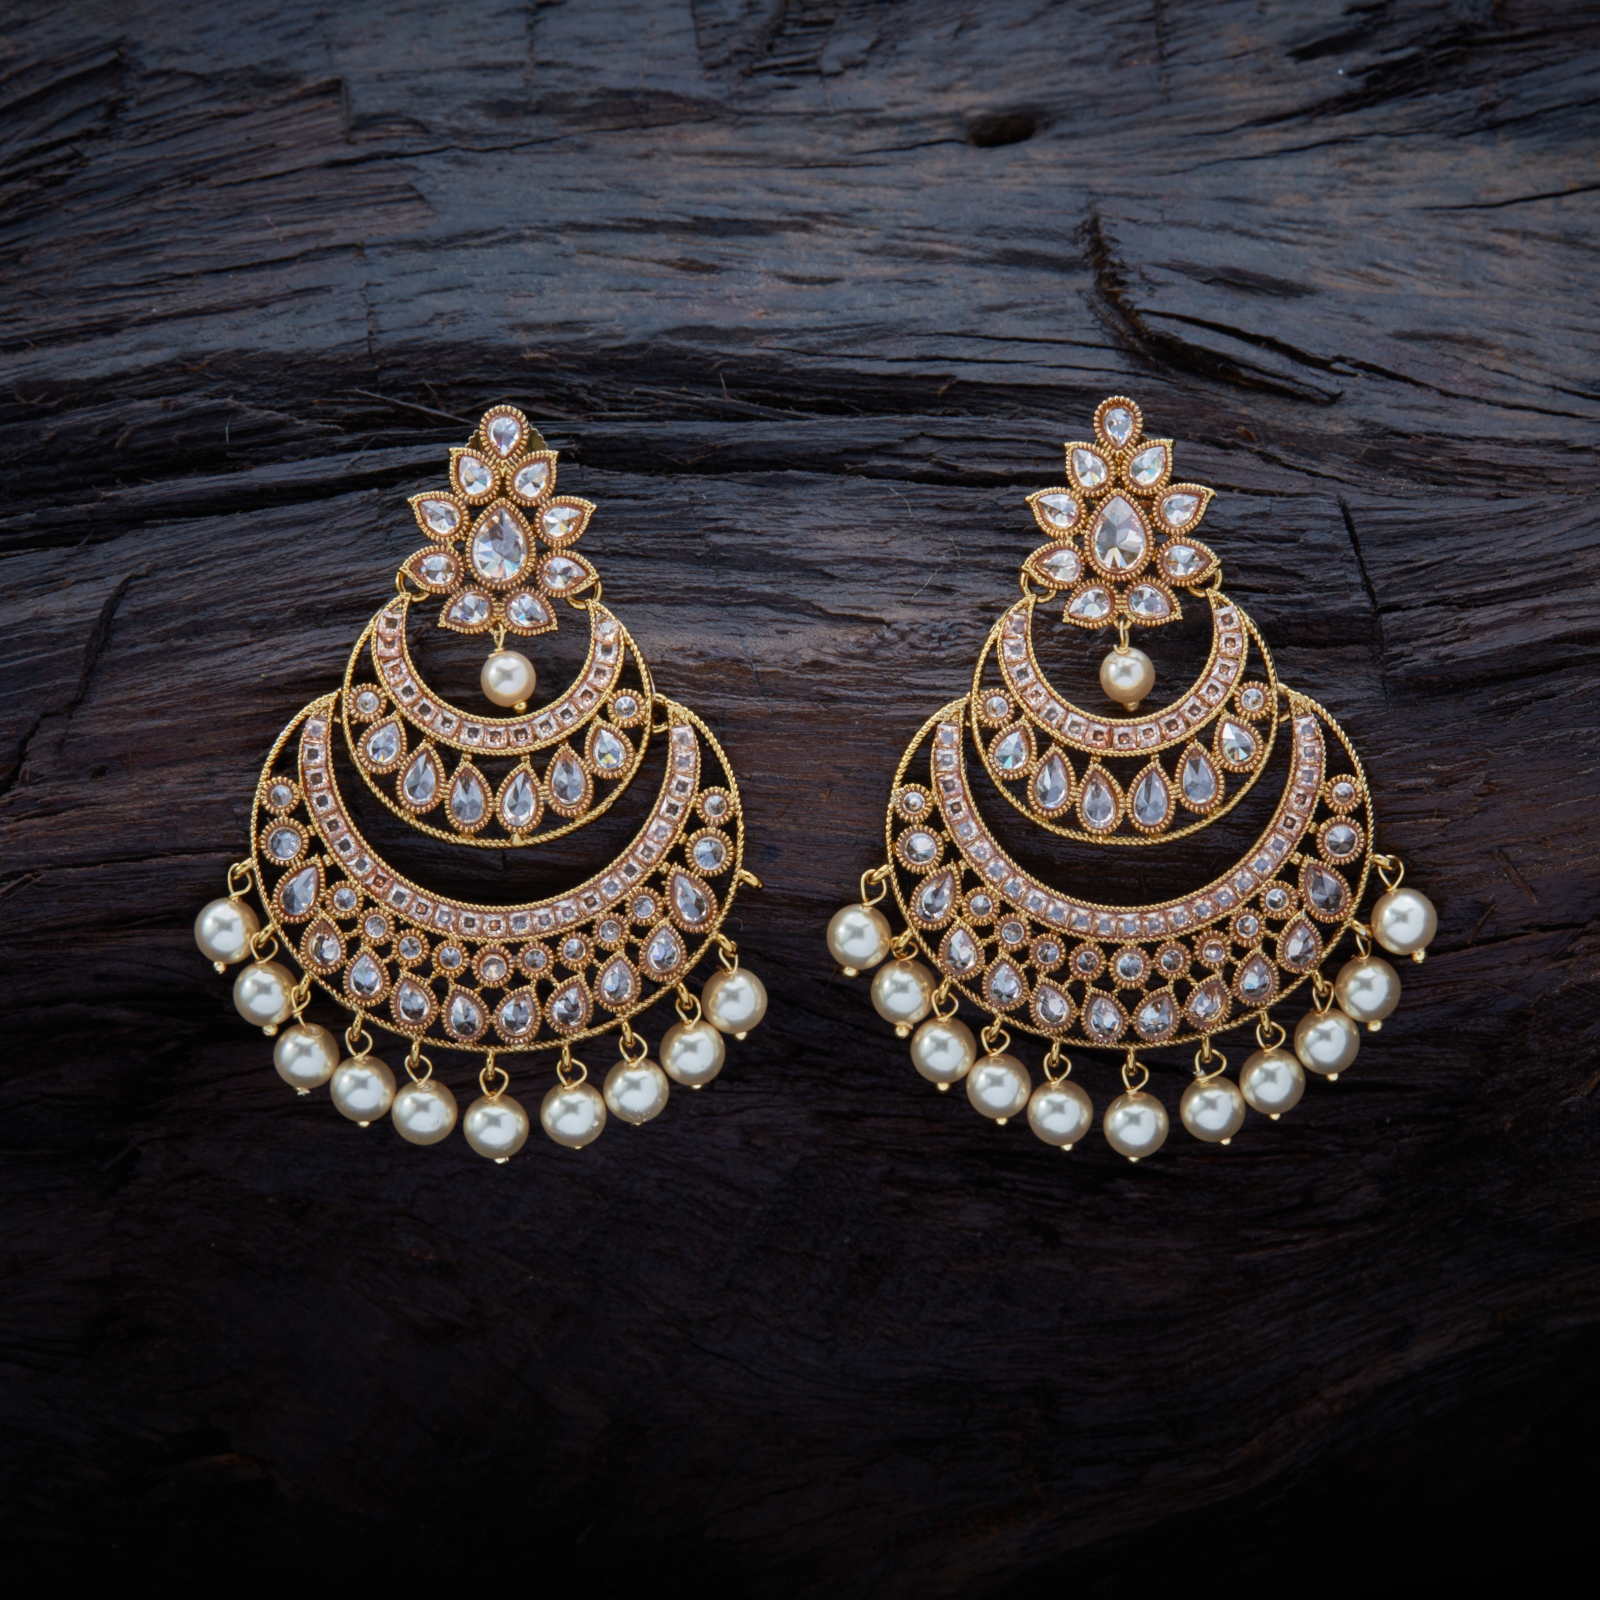 e9de59859 Vintage Design Antique Hanging Earrings studded with Champ synthetic stones  & Beads, with Mehandi Polish.